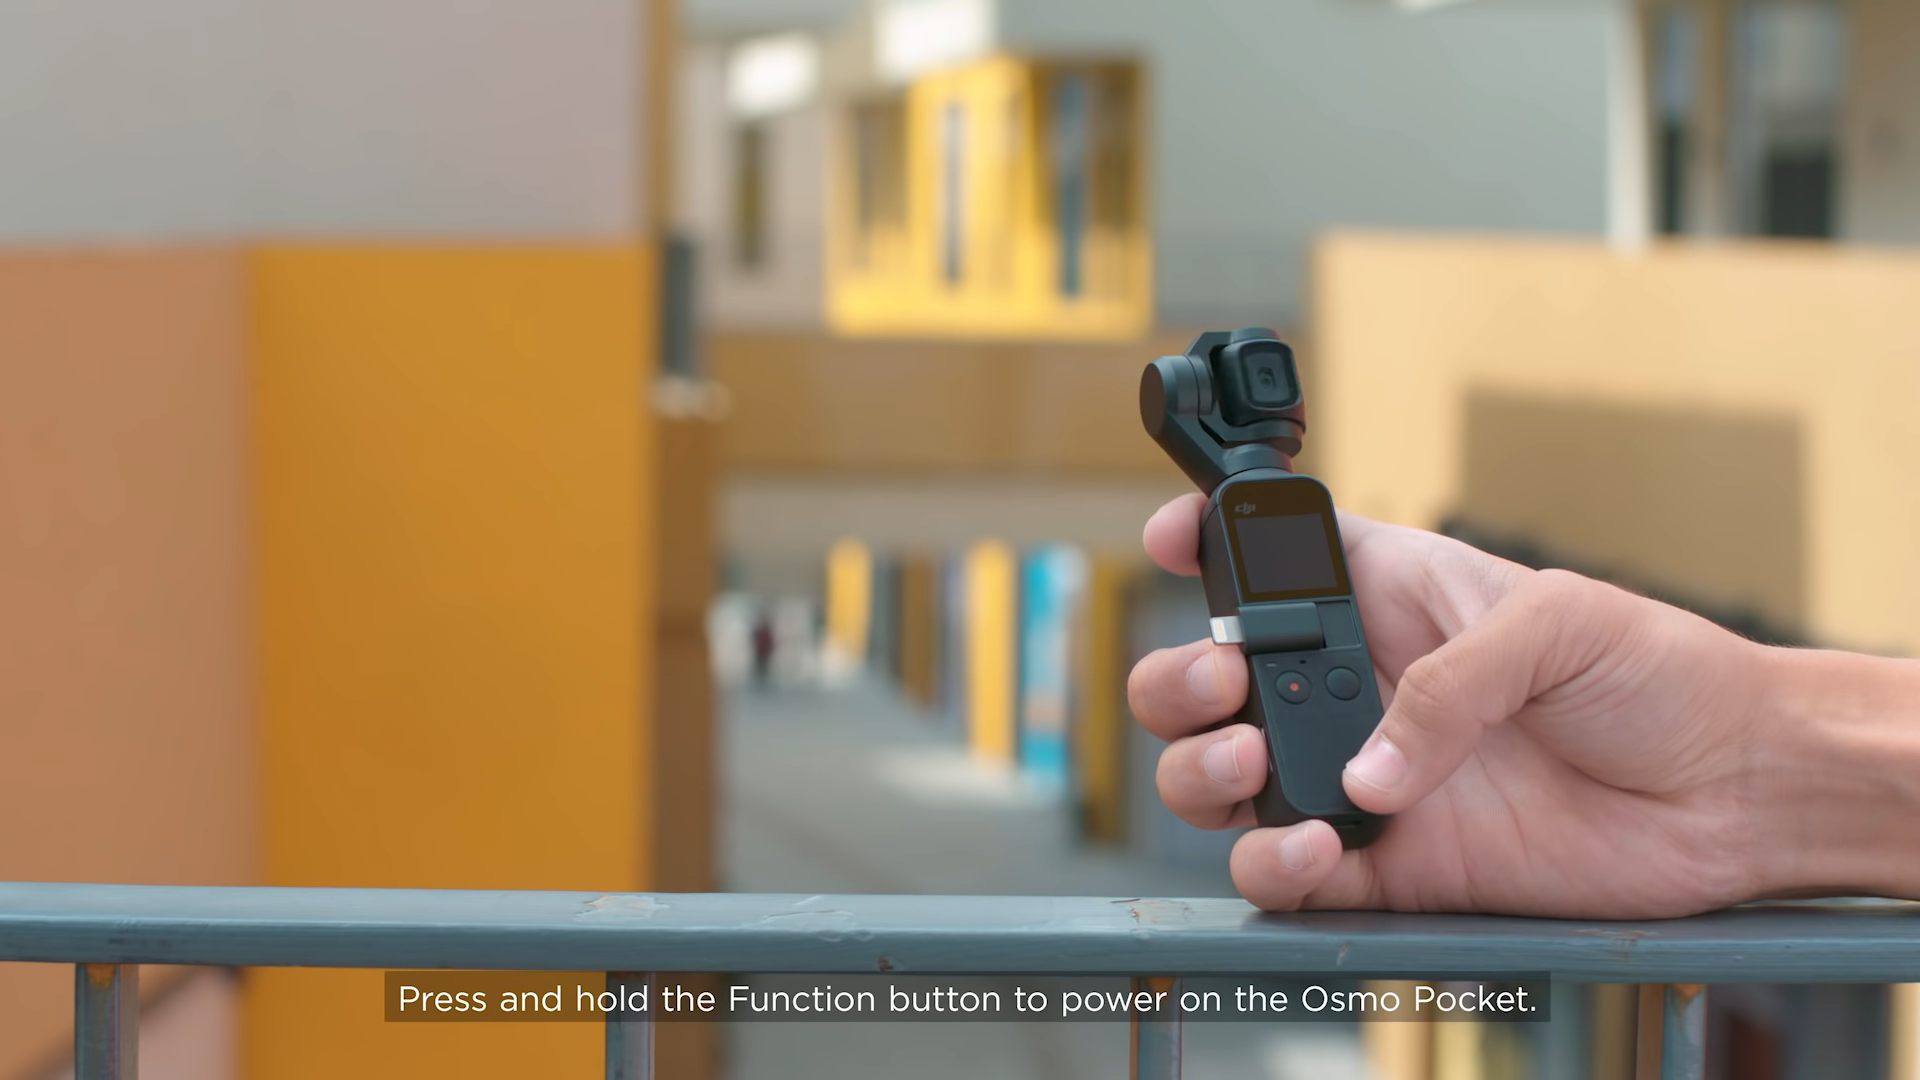 DJI osmo pocket in hand using story mode